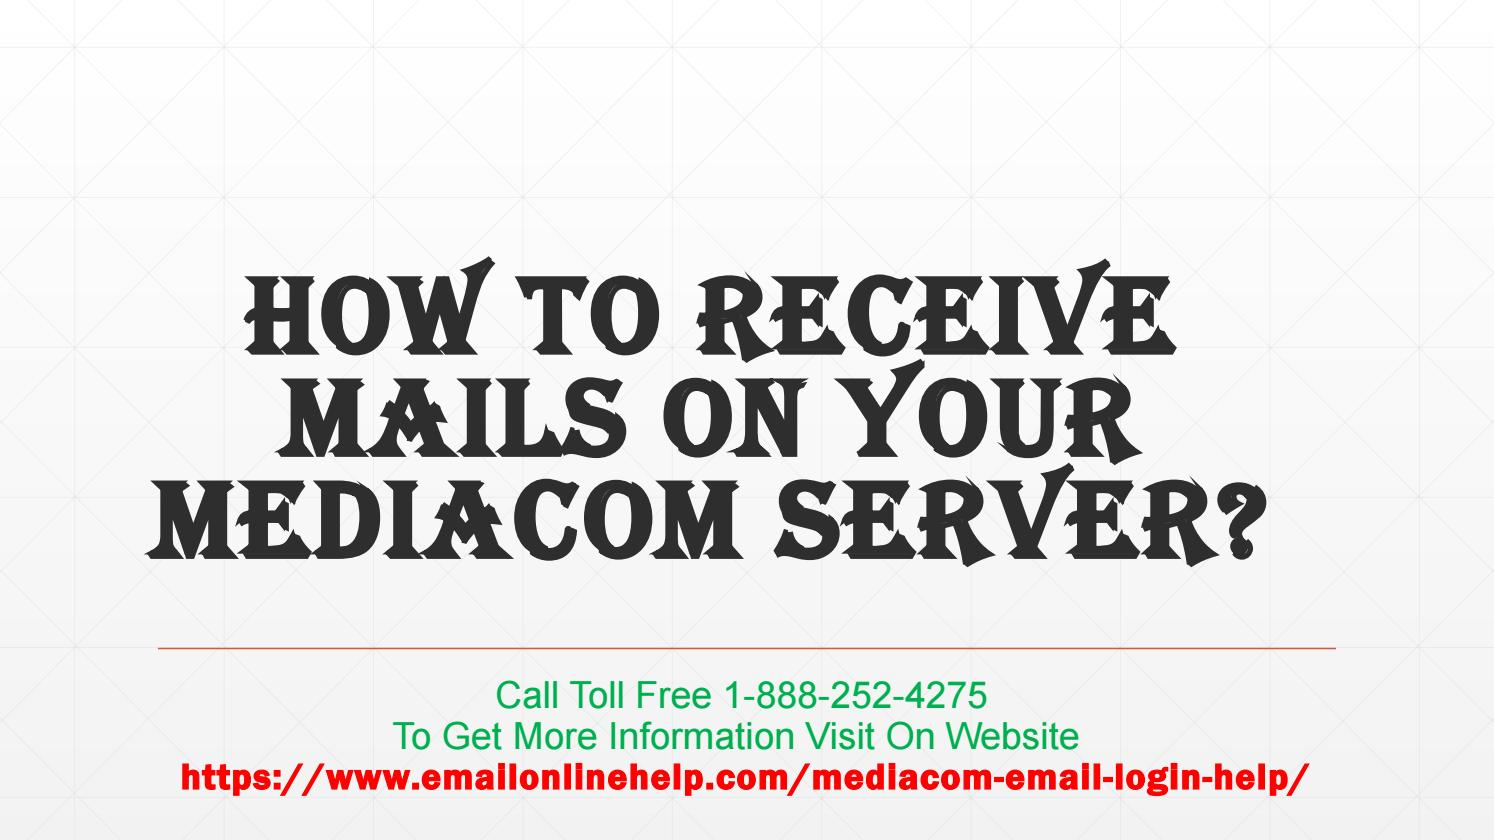 How to receive mails on your mediacom server by Email Online Help